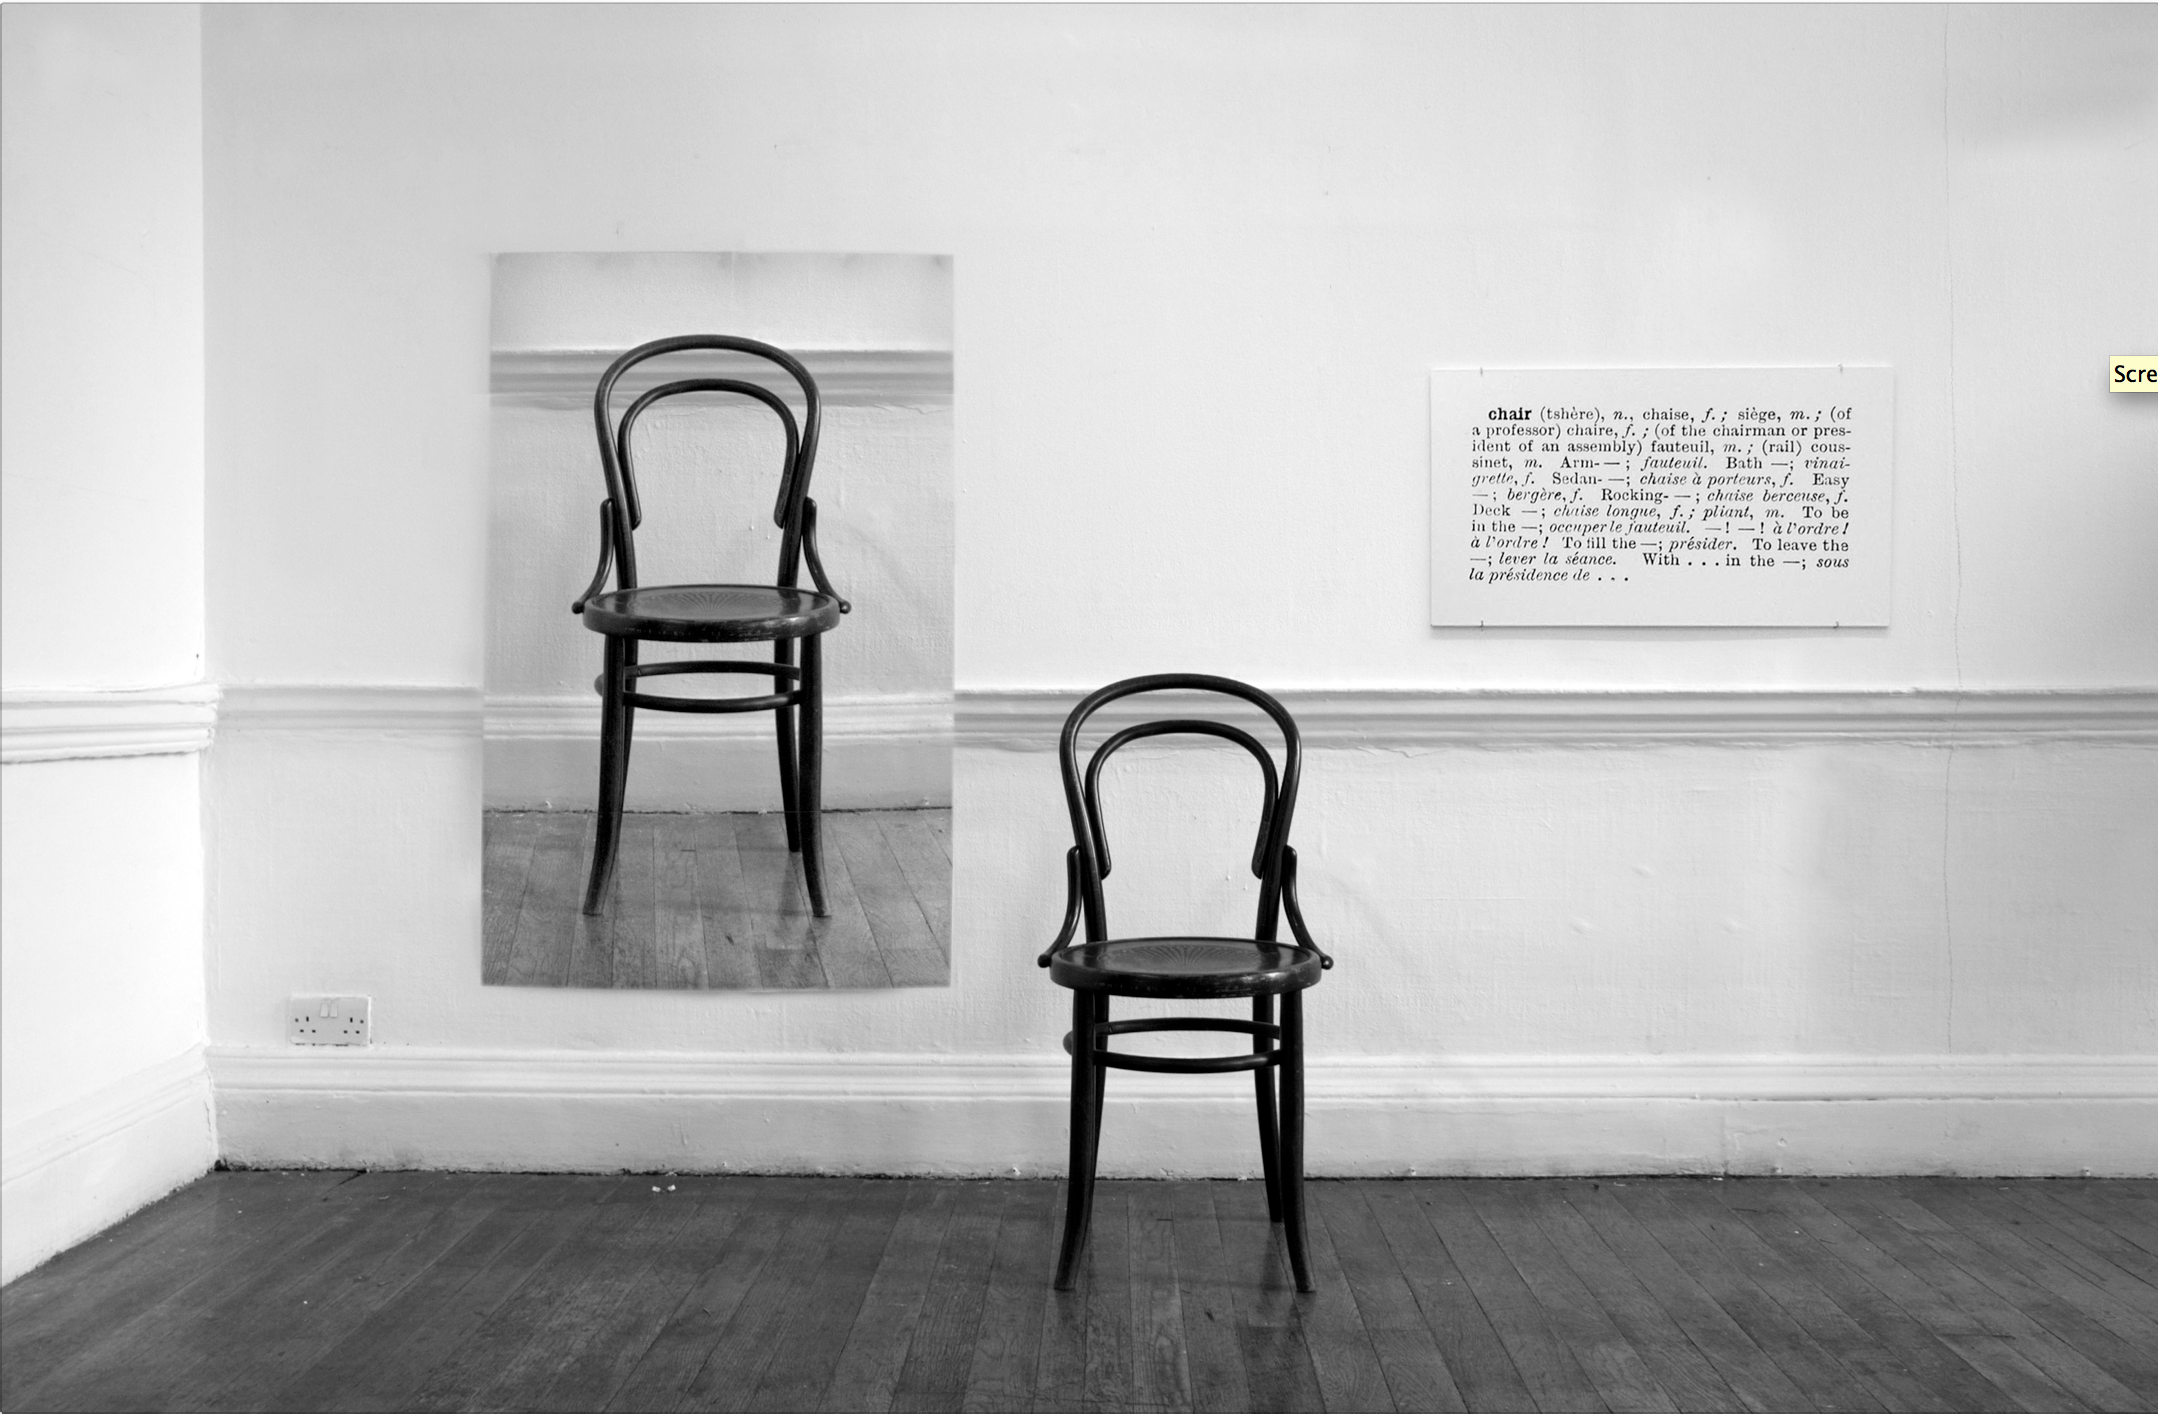 joseph kosuth on conceptual art One and three chairs joseph kosuth (american lawrence weiner, and other conceptual artists, kosuth approached art-making from a radical new perspective.